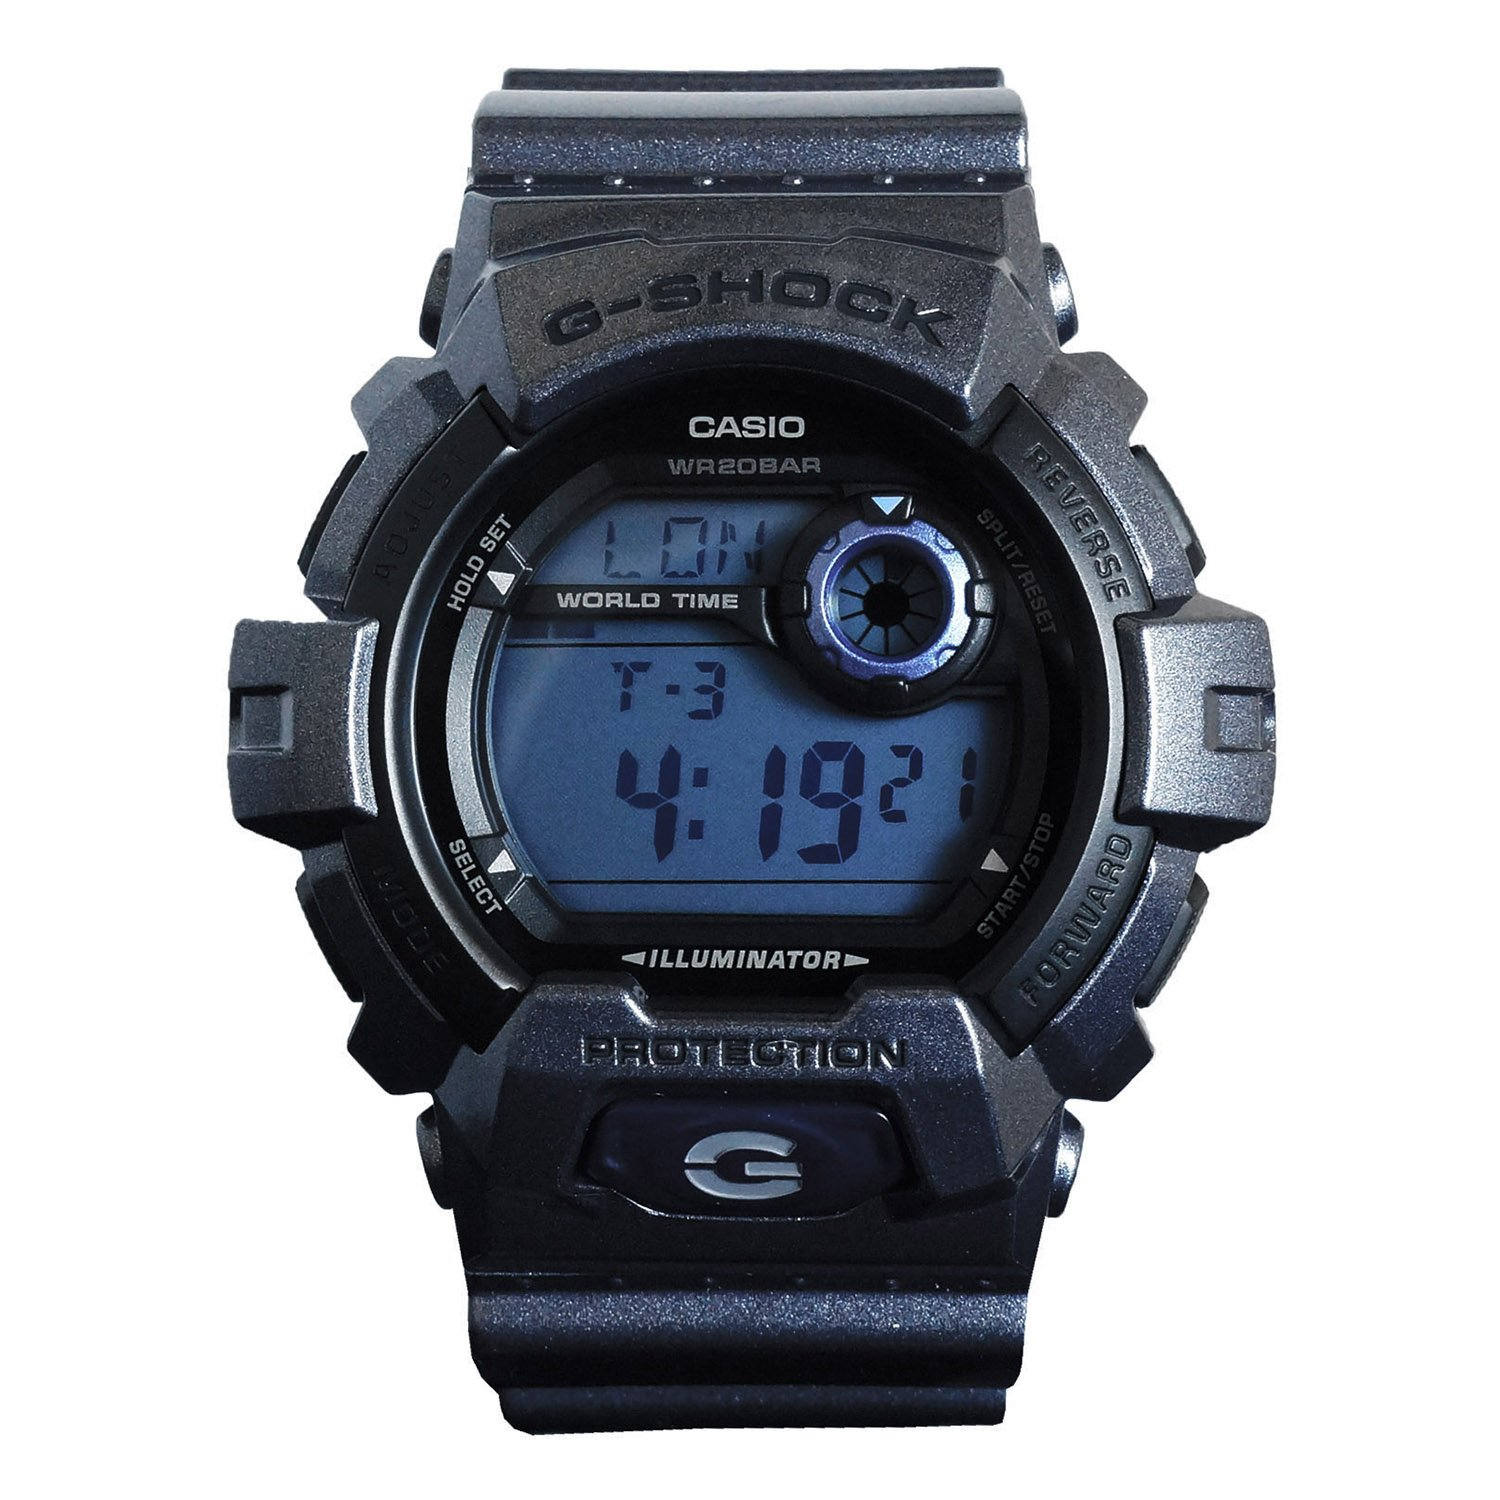 G-Shock 8900 Watch